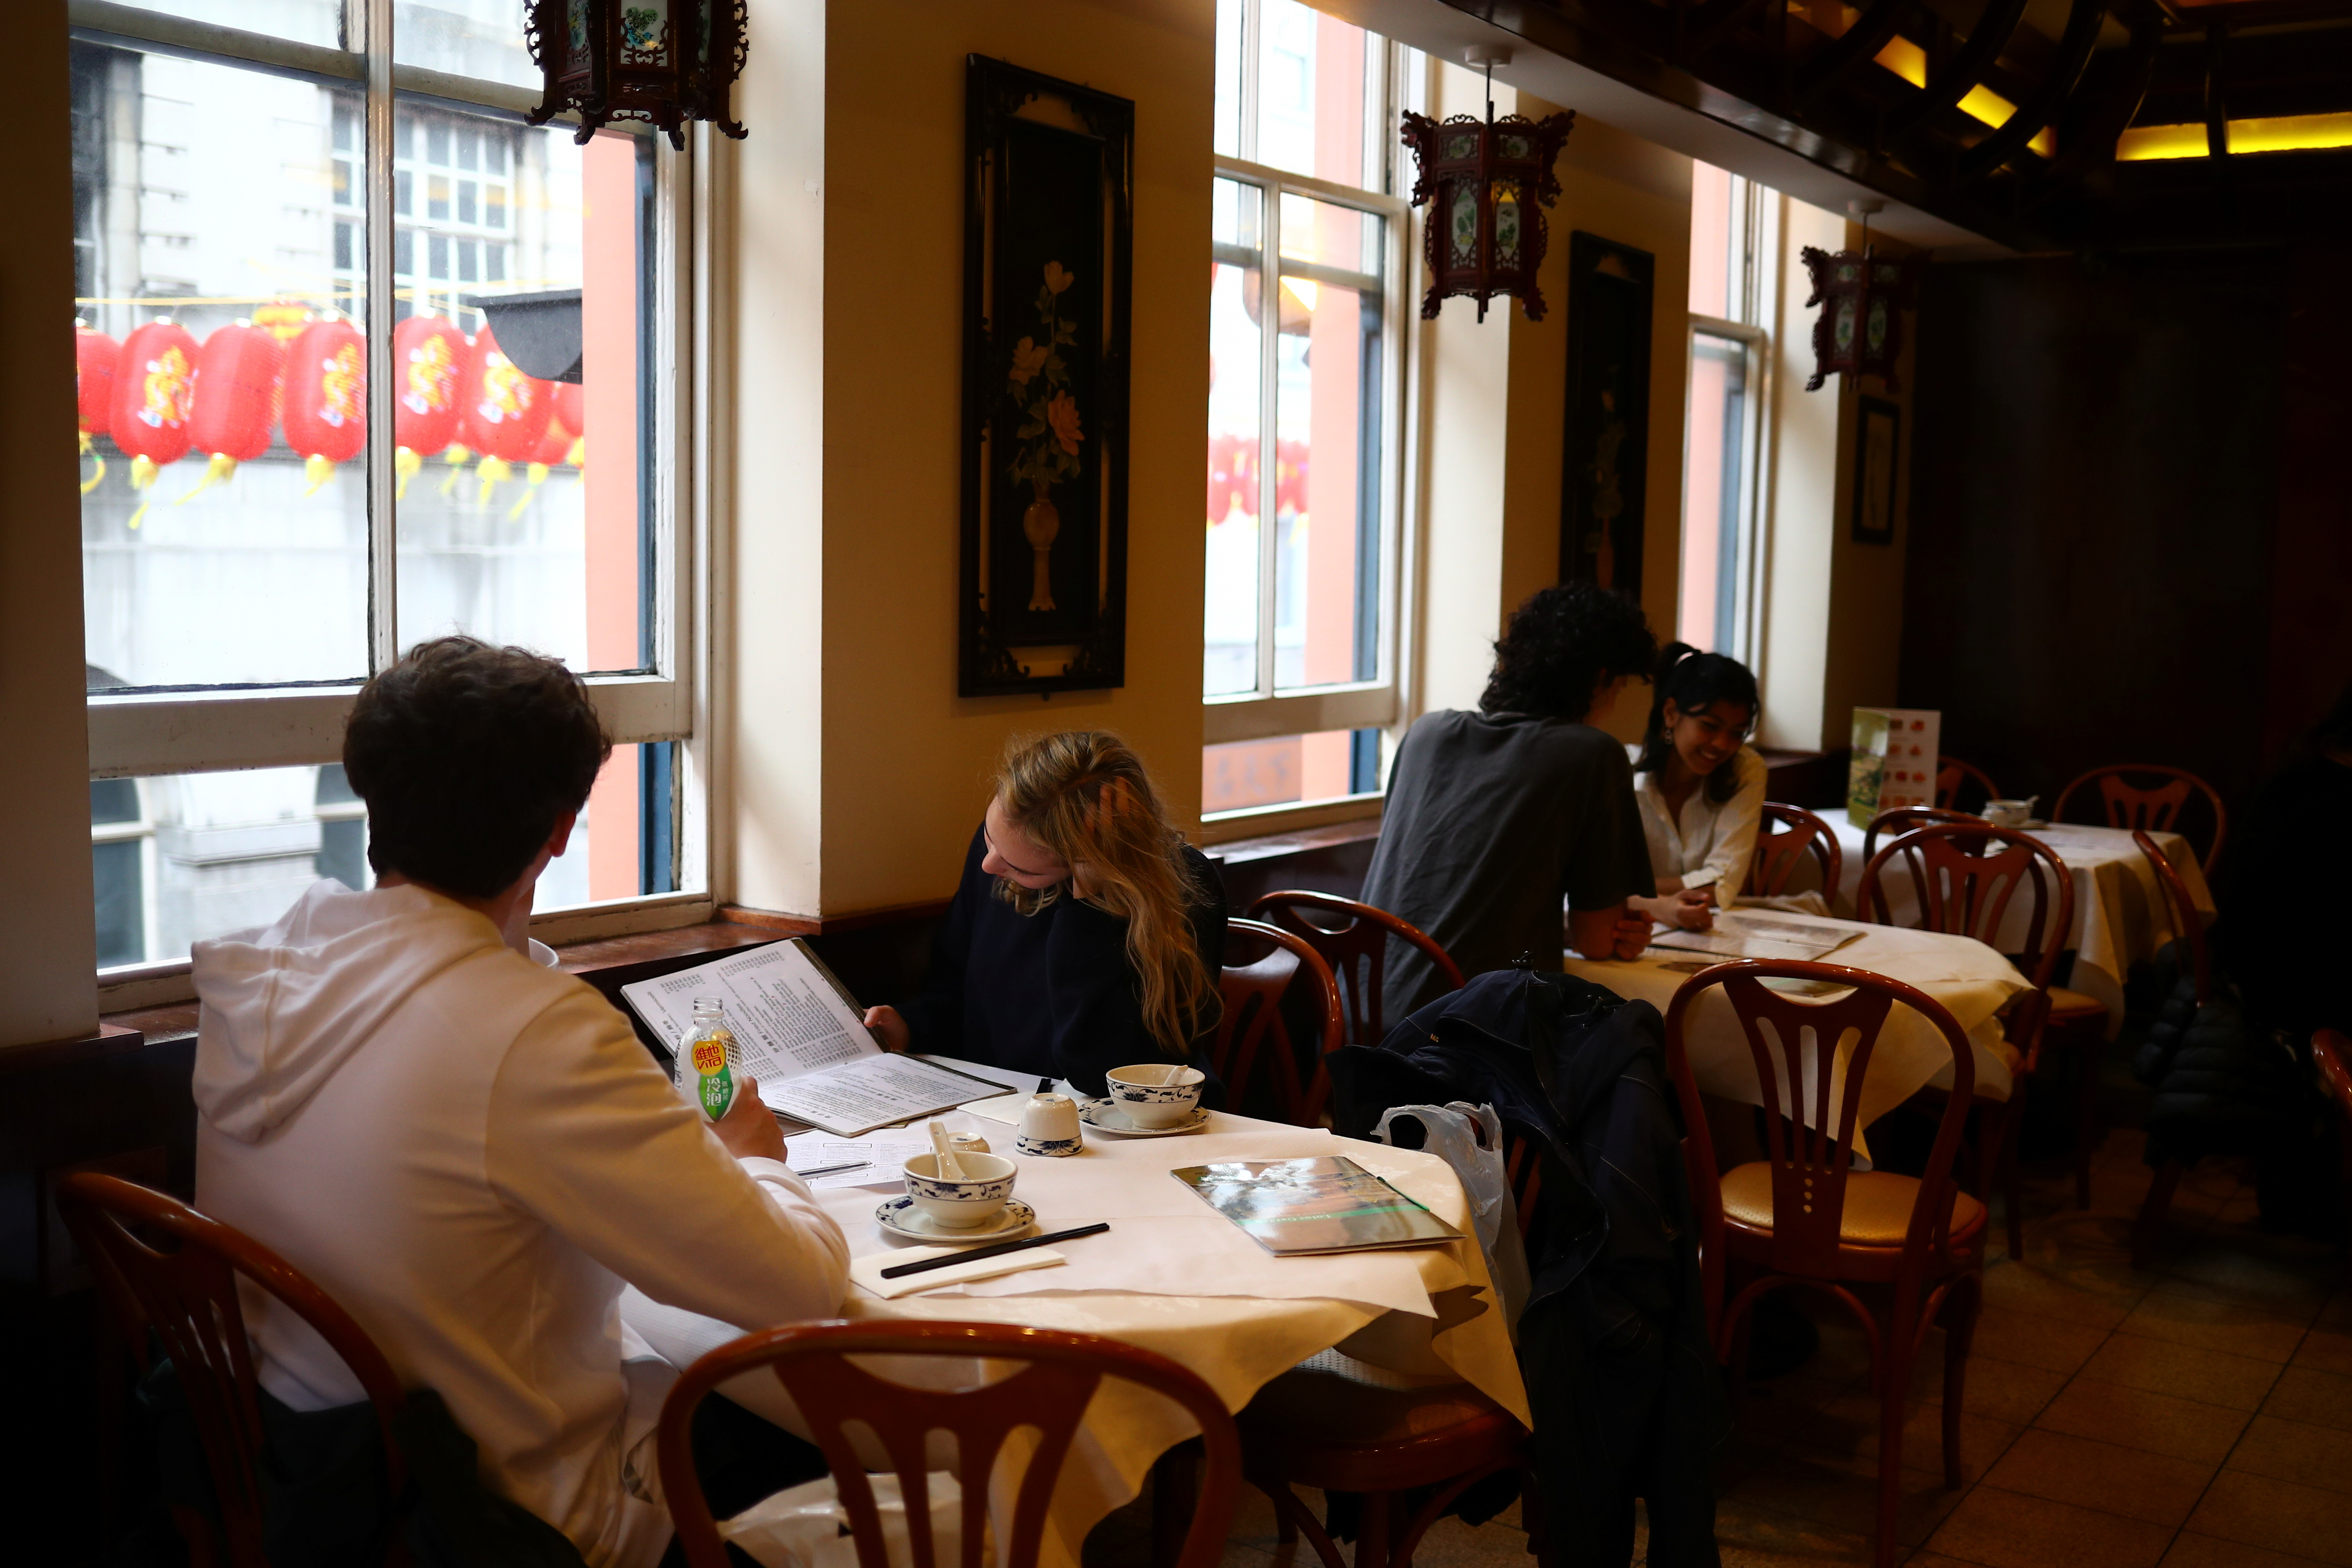 People dine inside a restaurant, amid the outbreak of the coronavirus disease (COVID-19), in Chinatown, London, Britain, 18 May 2021. REUTERS/Hannah McKay